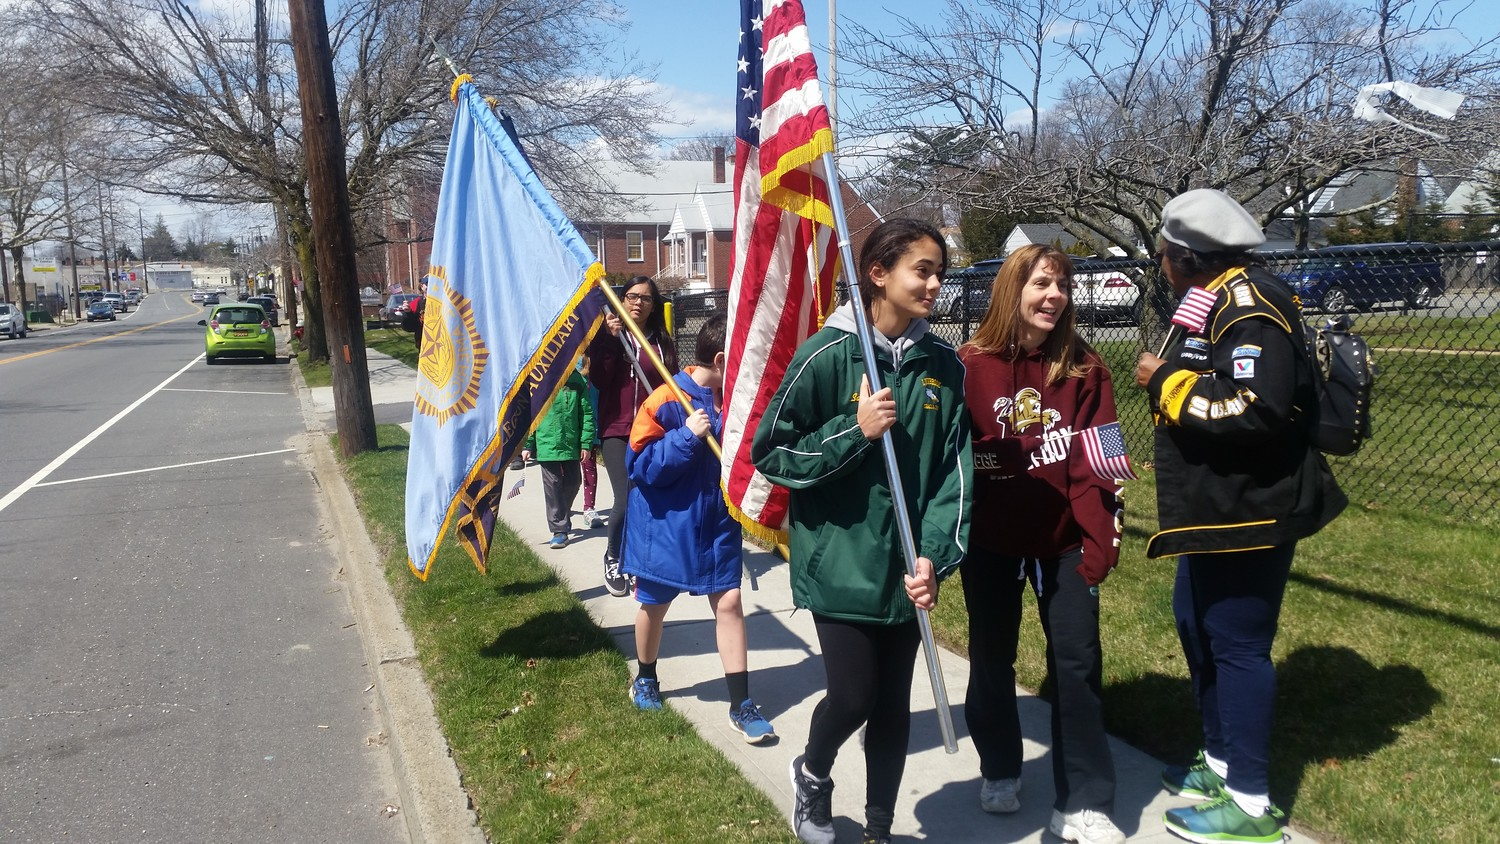 Residents marched along Franklin Ave. for the inaugural Veterans Walk-A-Thon last Sunday.